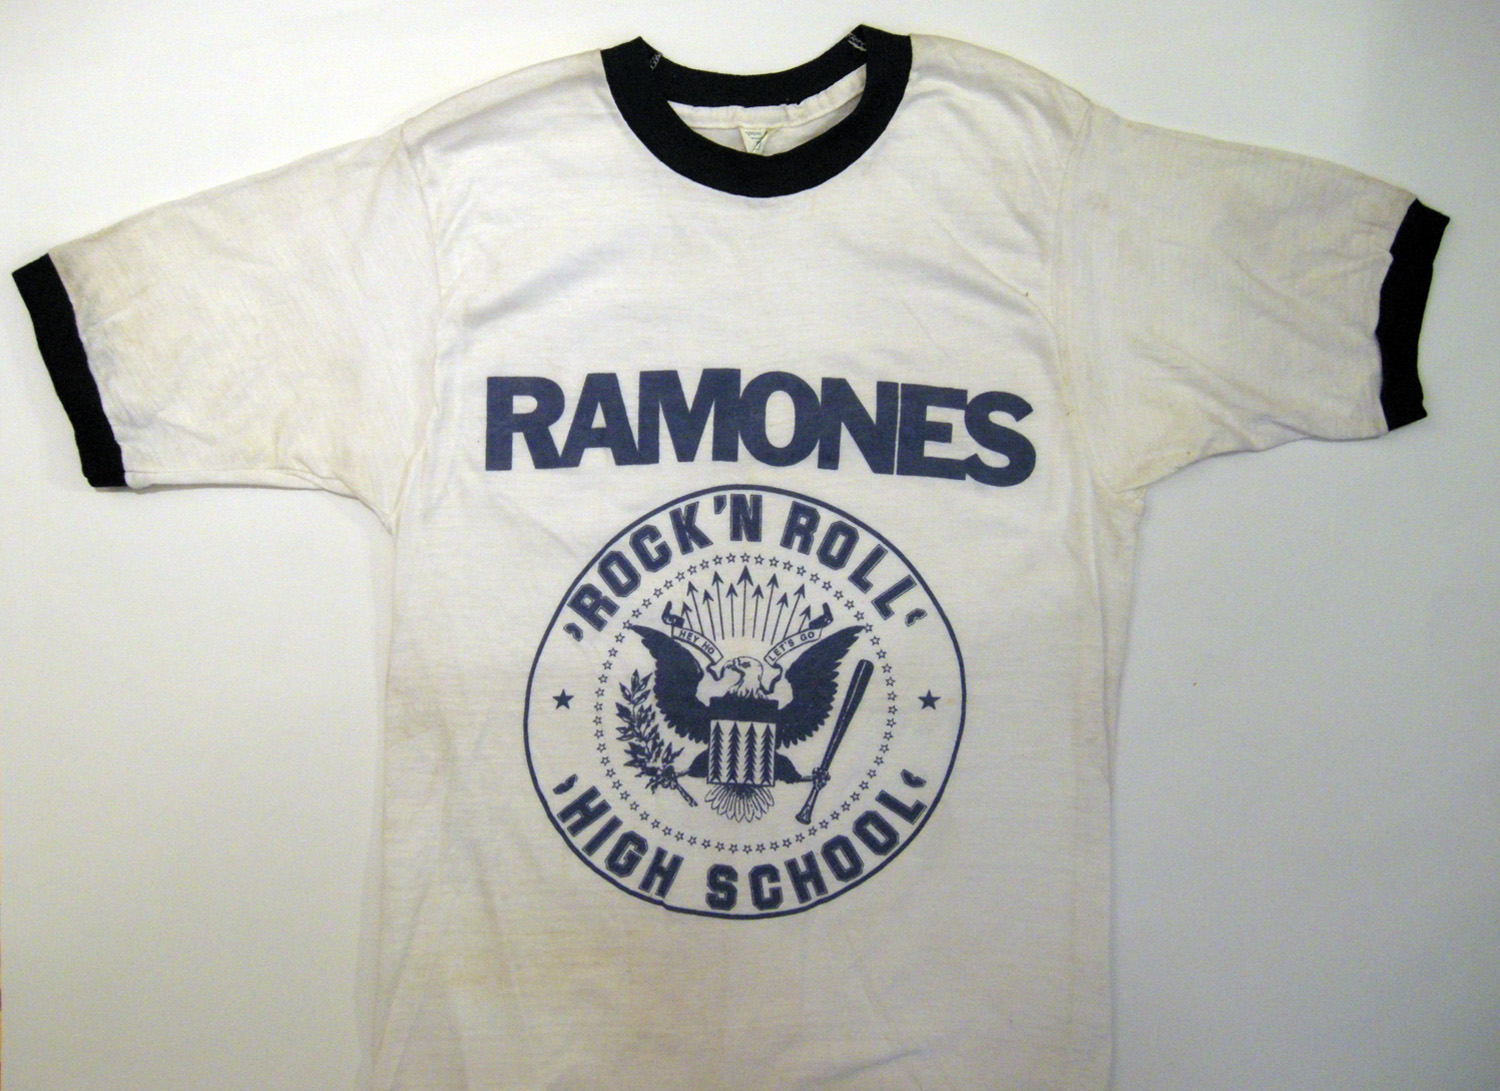 Arturo Vega, Rock 'N Roll High School, silkscreen T-Shirt, 1978 A variation of the Ramones Logo used in conjunction with the film Rock 'N Roll High School.